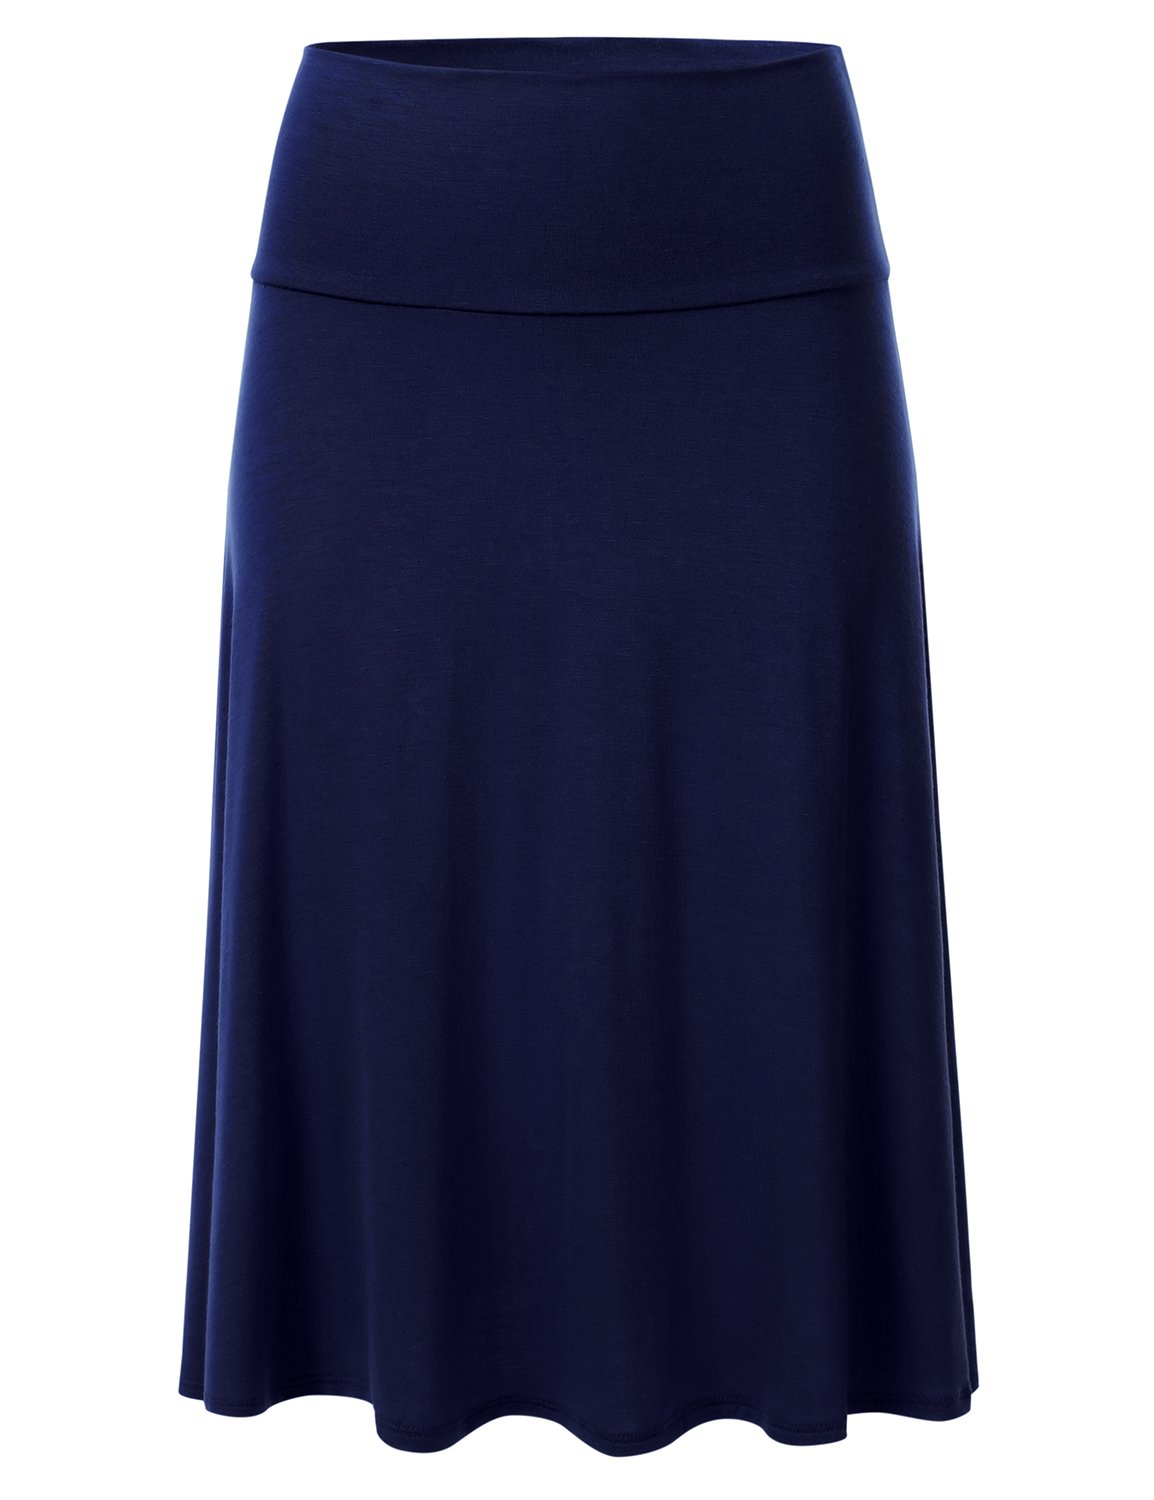 FLORIA Womens Solid Lightweight Knit Elastic Waist Flared Midi Skirt Navy S